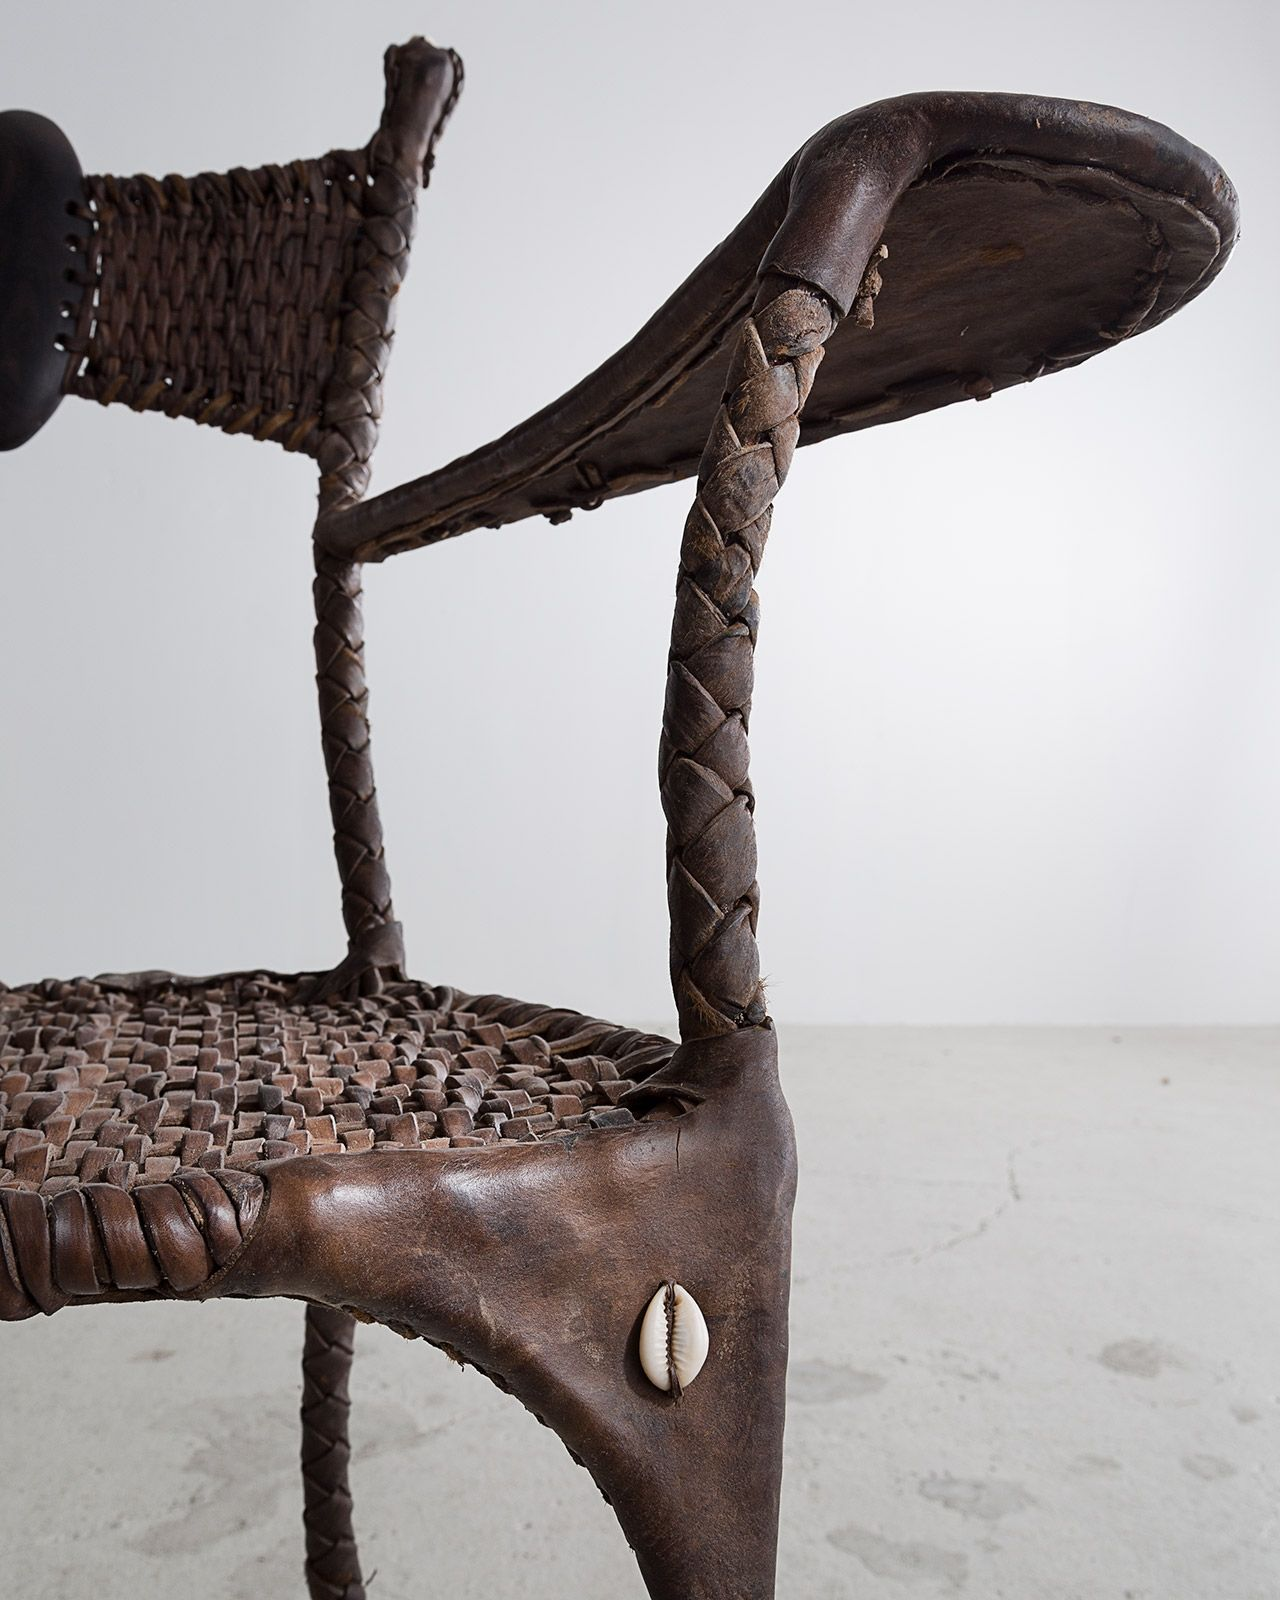 Decorative Objects Living Room: The Living Art Of Babacar #interior #design #dakar